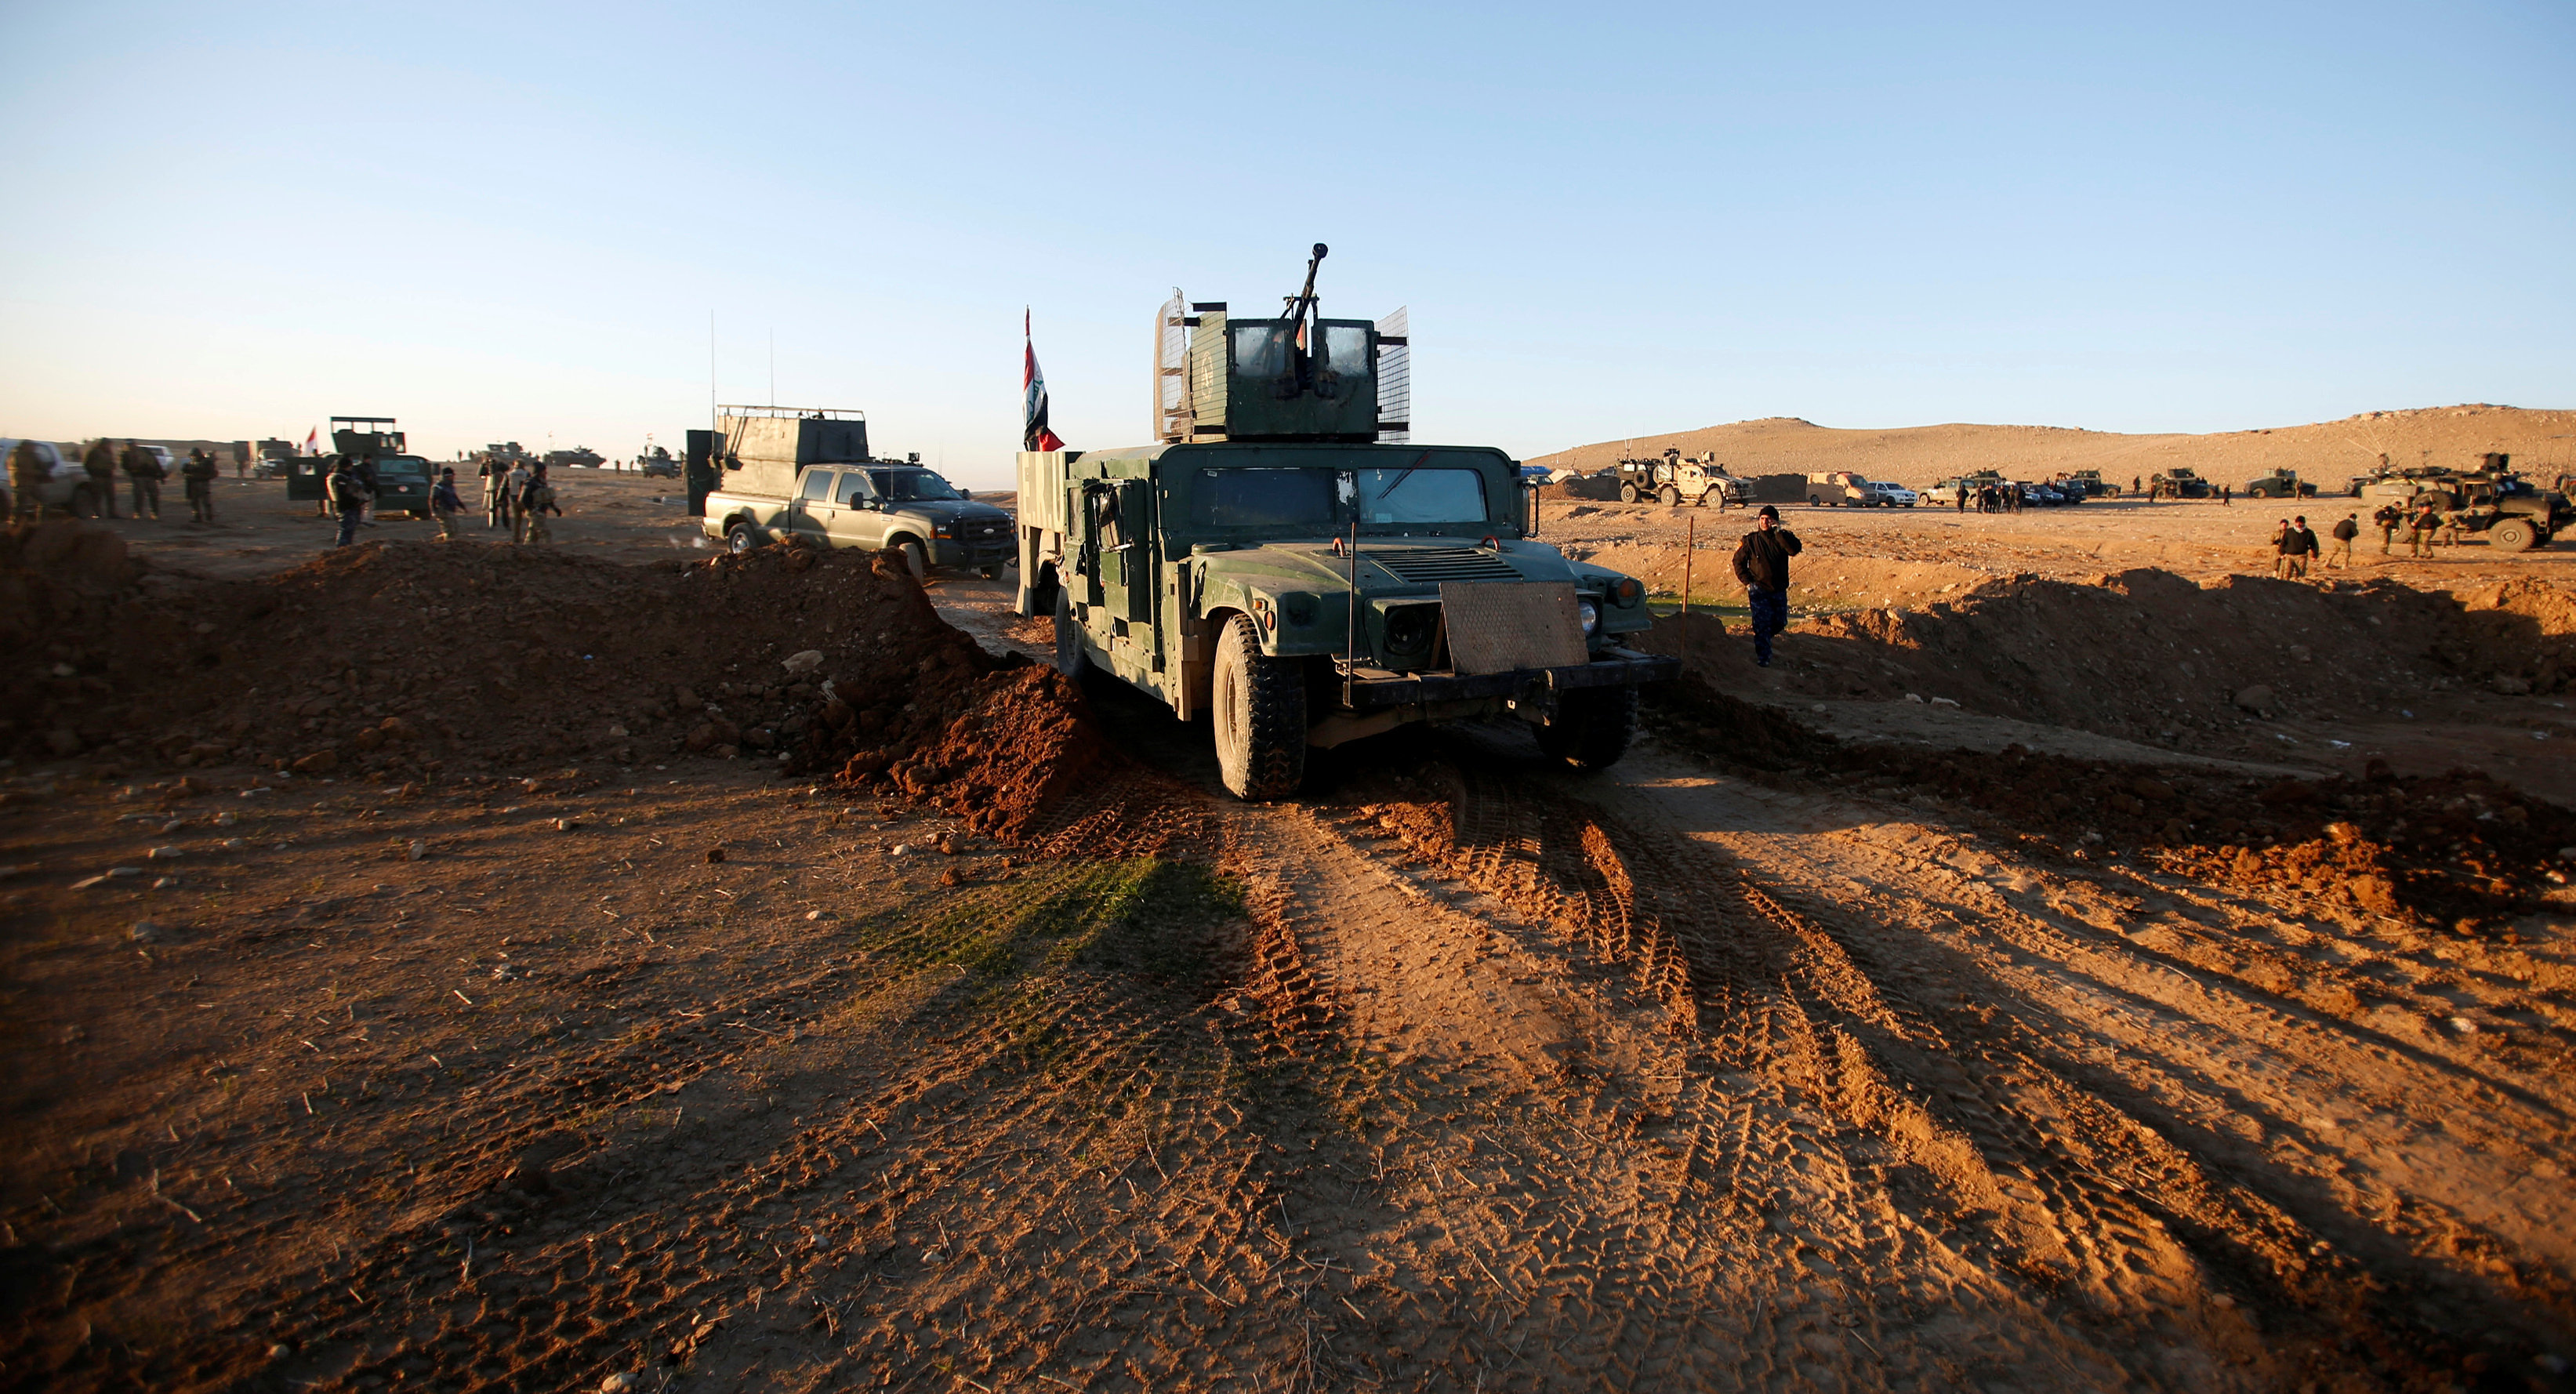 Iraqi security forces advance towards the western side of Mosul, Iraq February 19, 2017